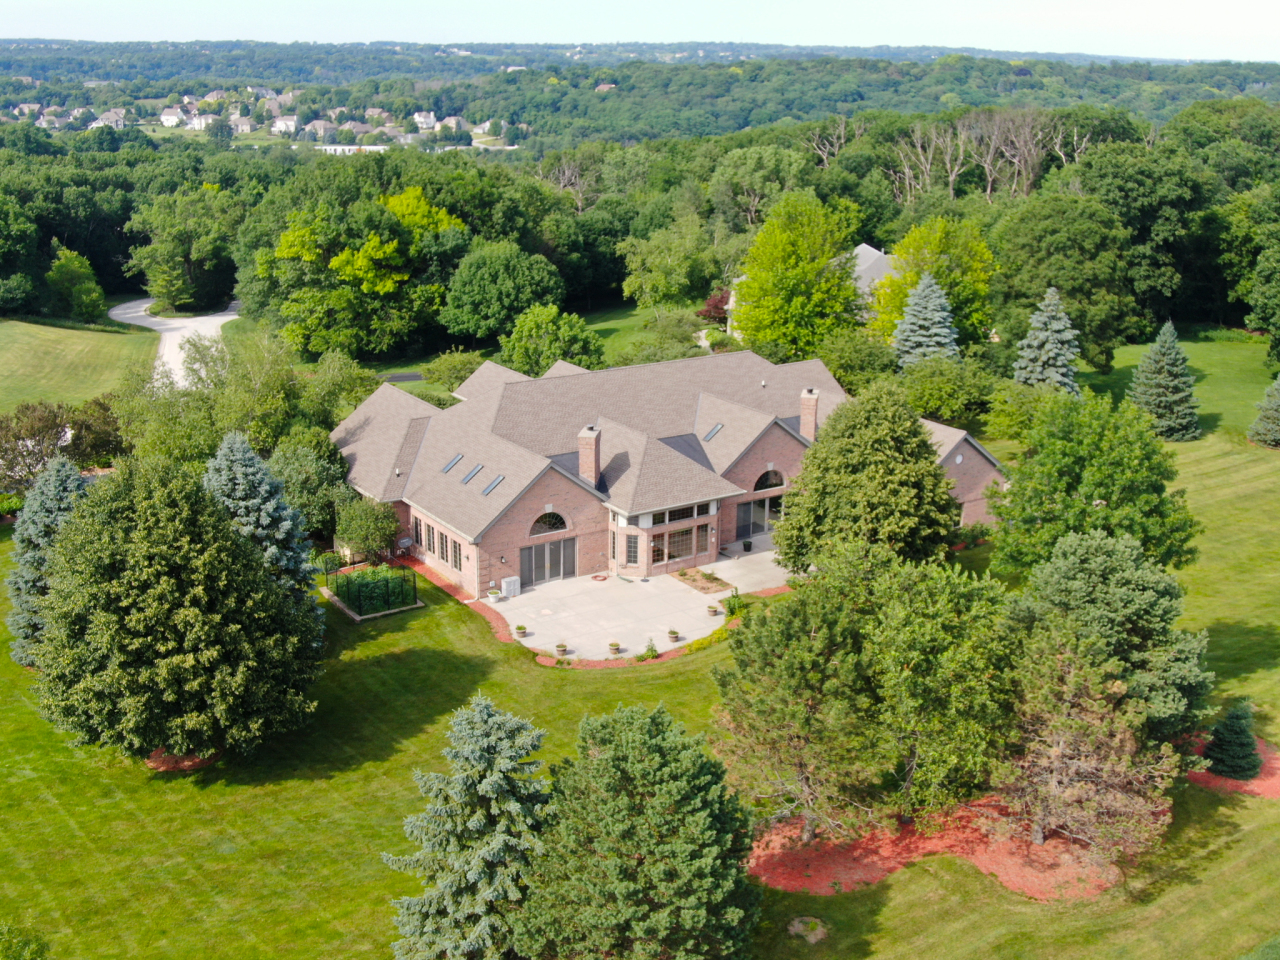 Photo of W283N3660 Yorkshire Trce, Pewaukee, WI 53072